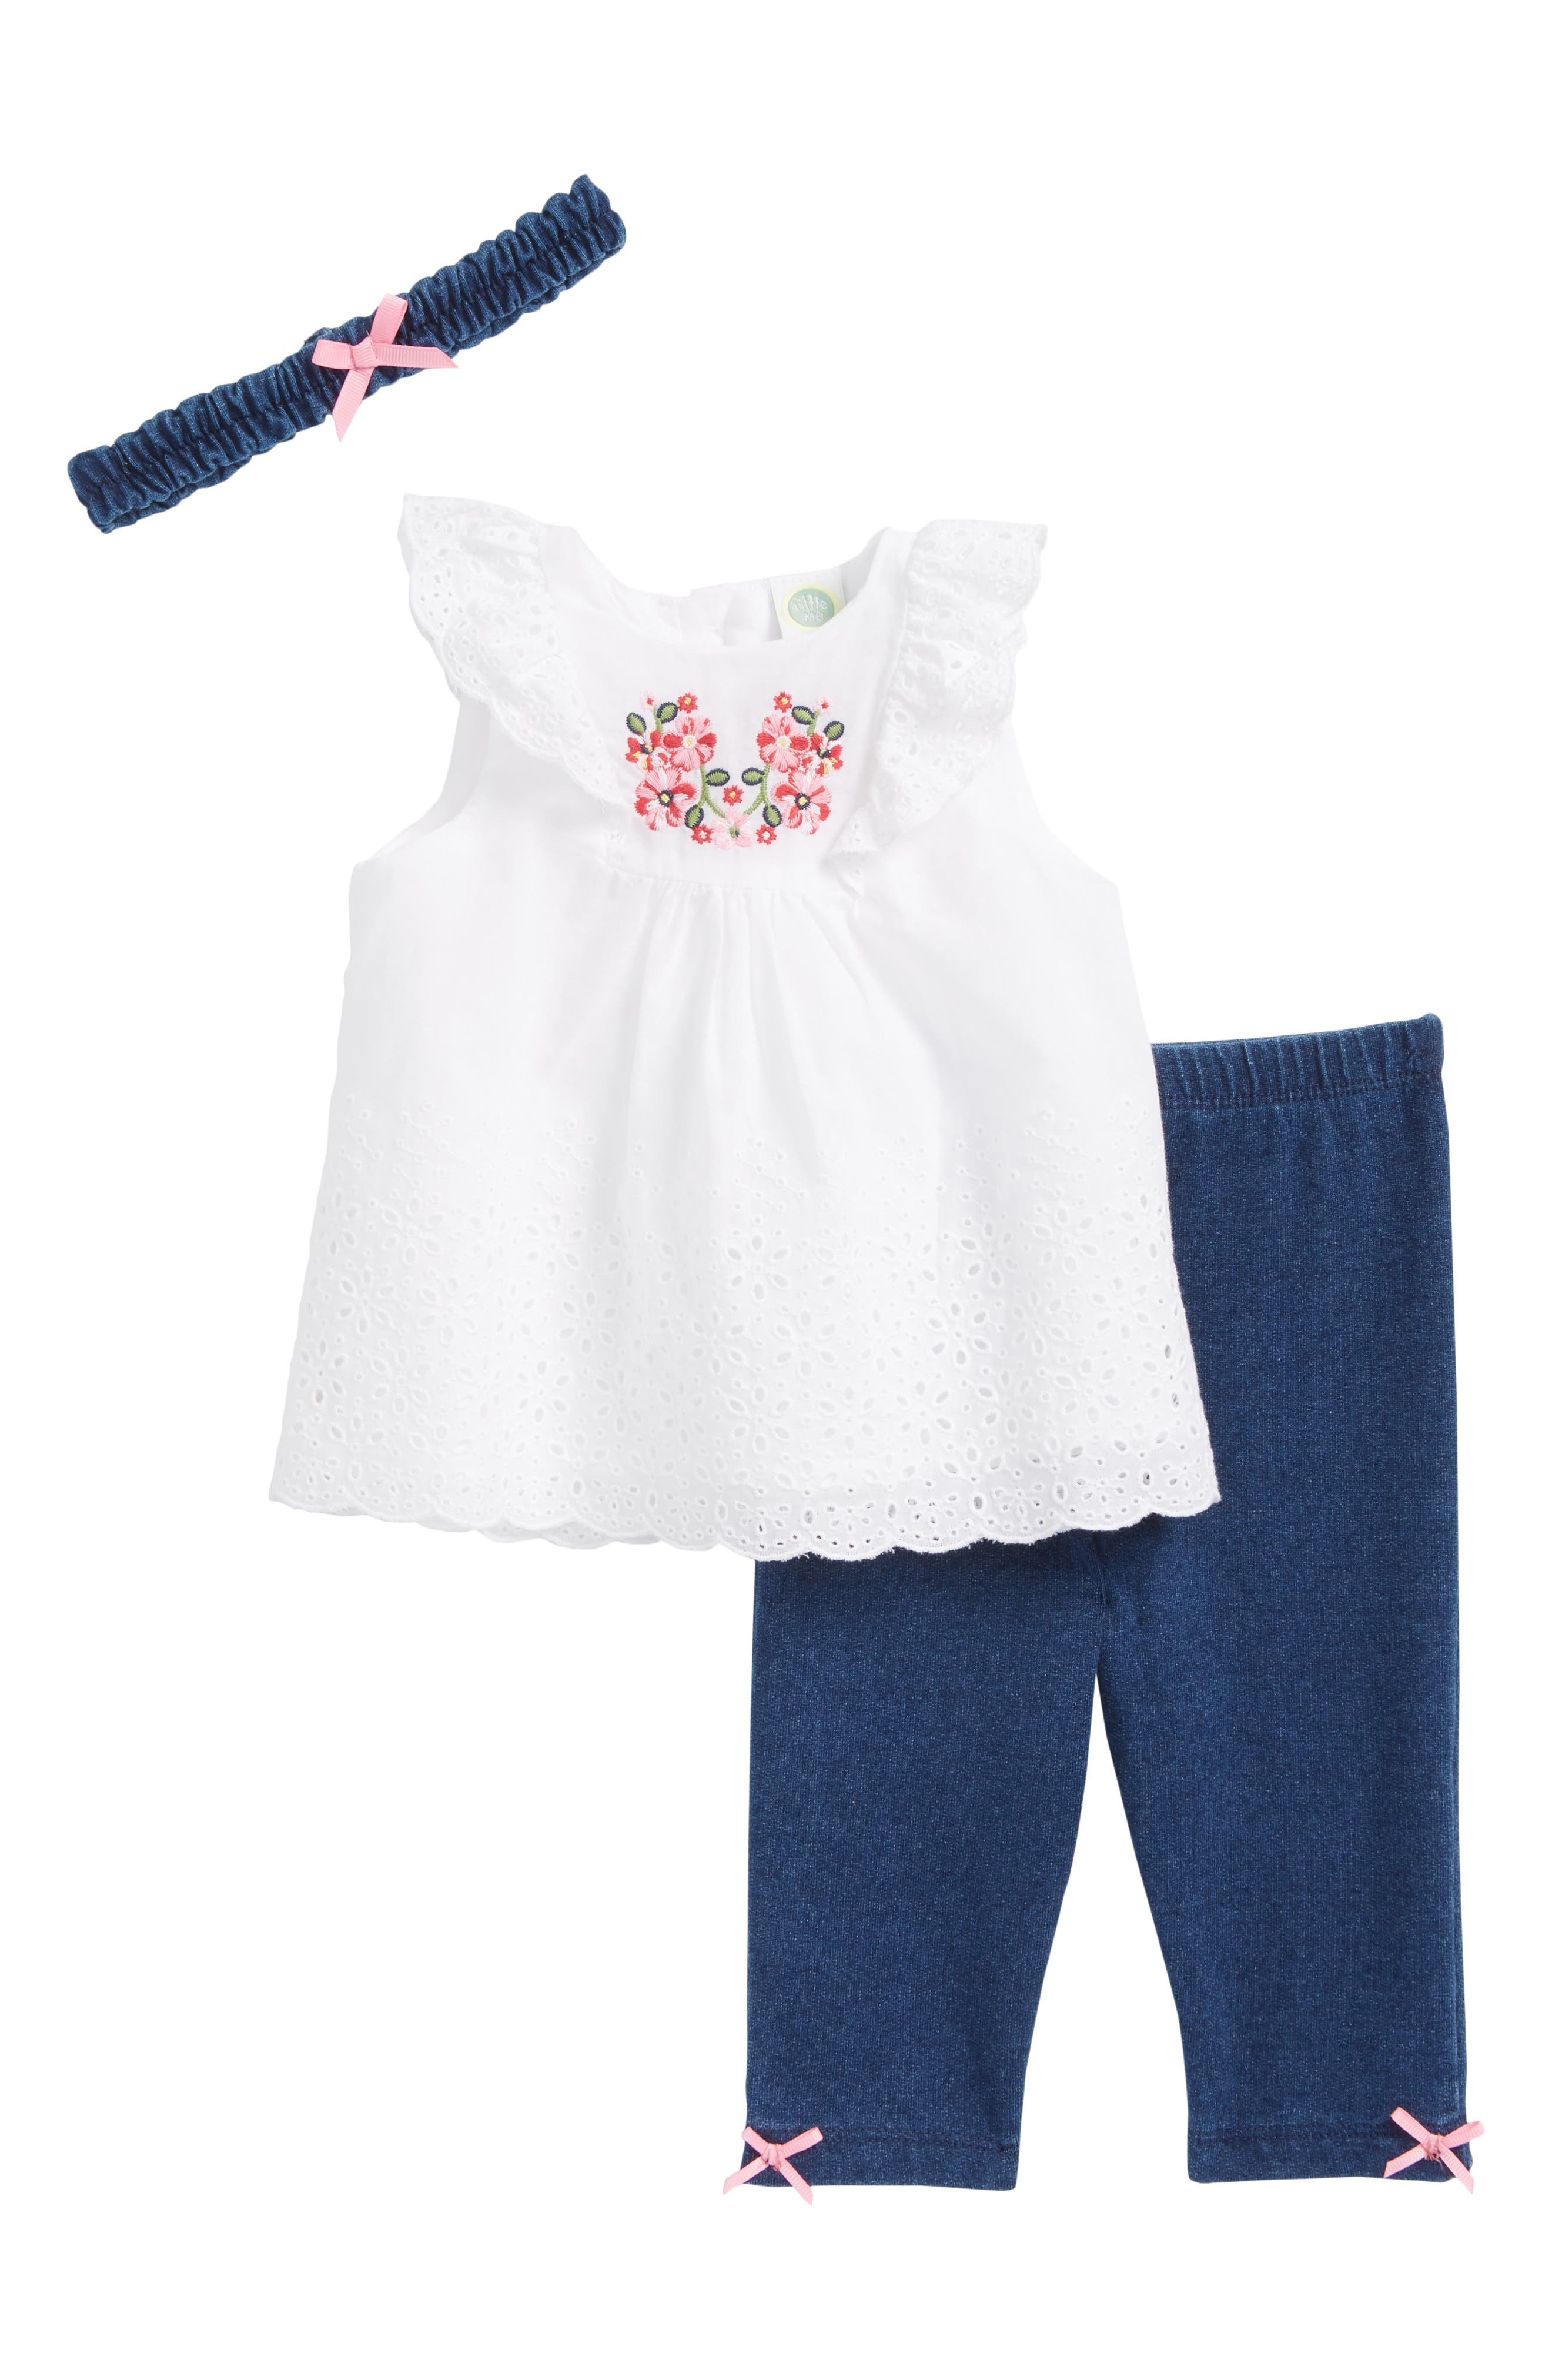 Main Image - Little Me Embroidered Eyelet Tunic, Leggings & Head Wrap Set (Baby Girls)